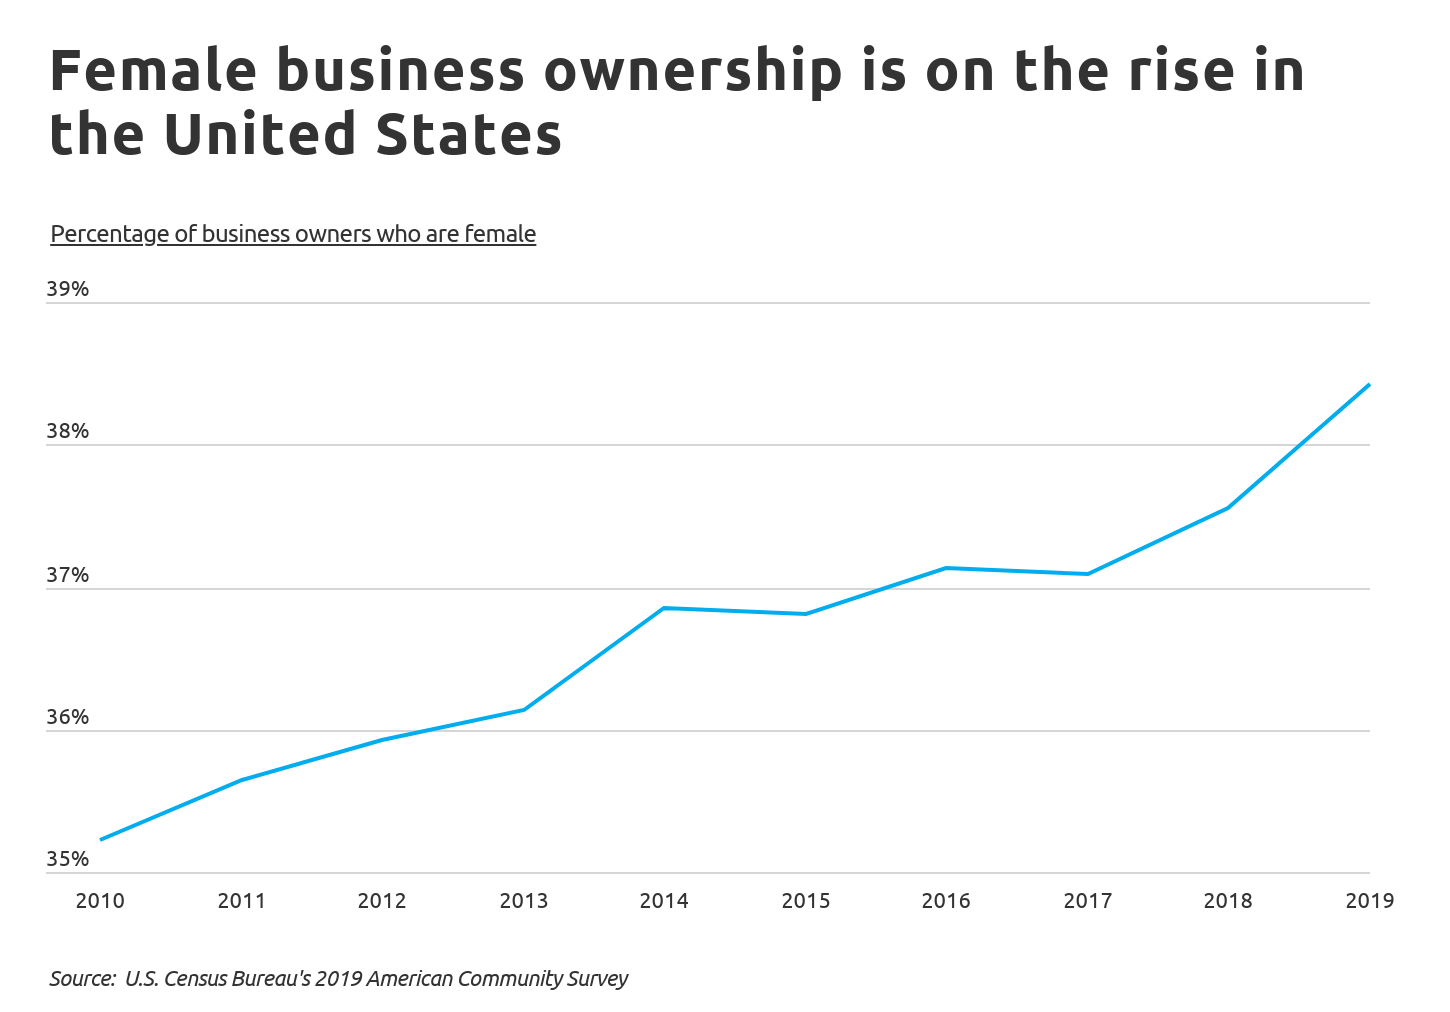 Female business ownership is on the rise in the United States